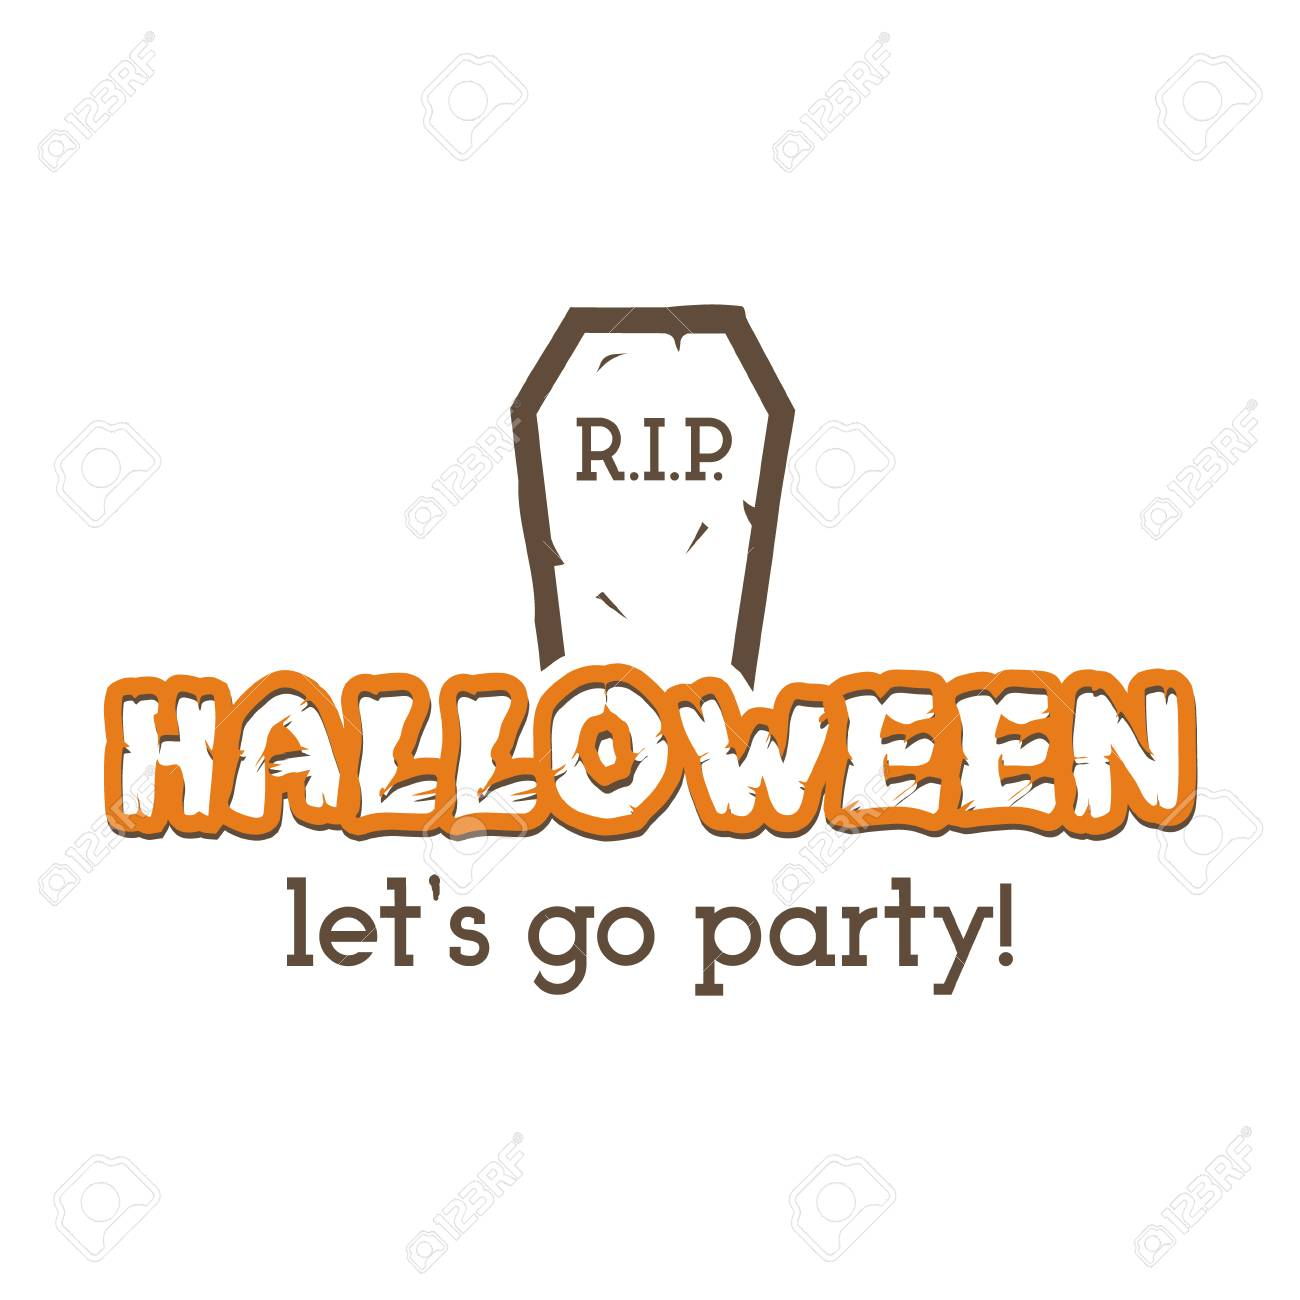 Halloween RIP Party Label Template With Tombstone And Typography Elements Text Retro Grunge Effect